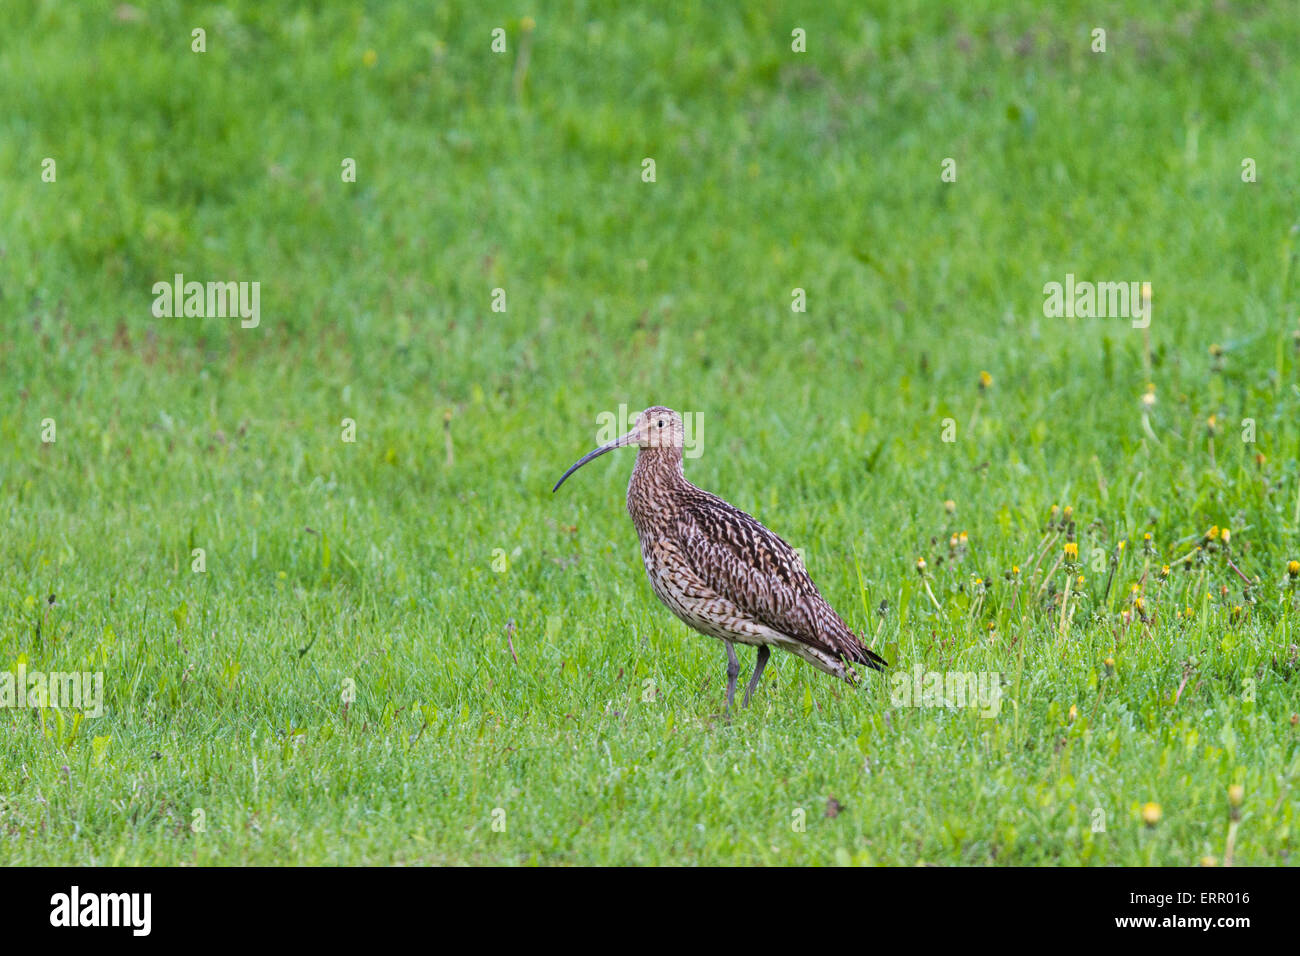 Eurasian curlew on a lawn in norrbotten, Sweden - Stock Image